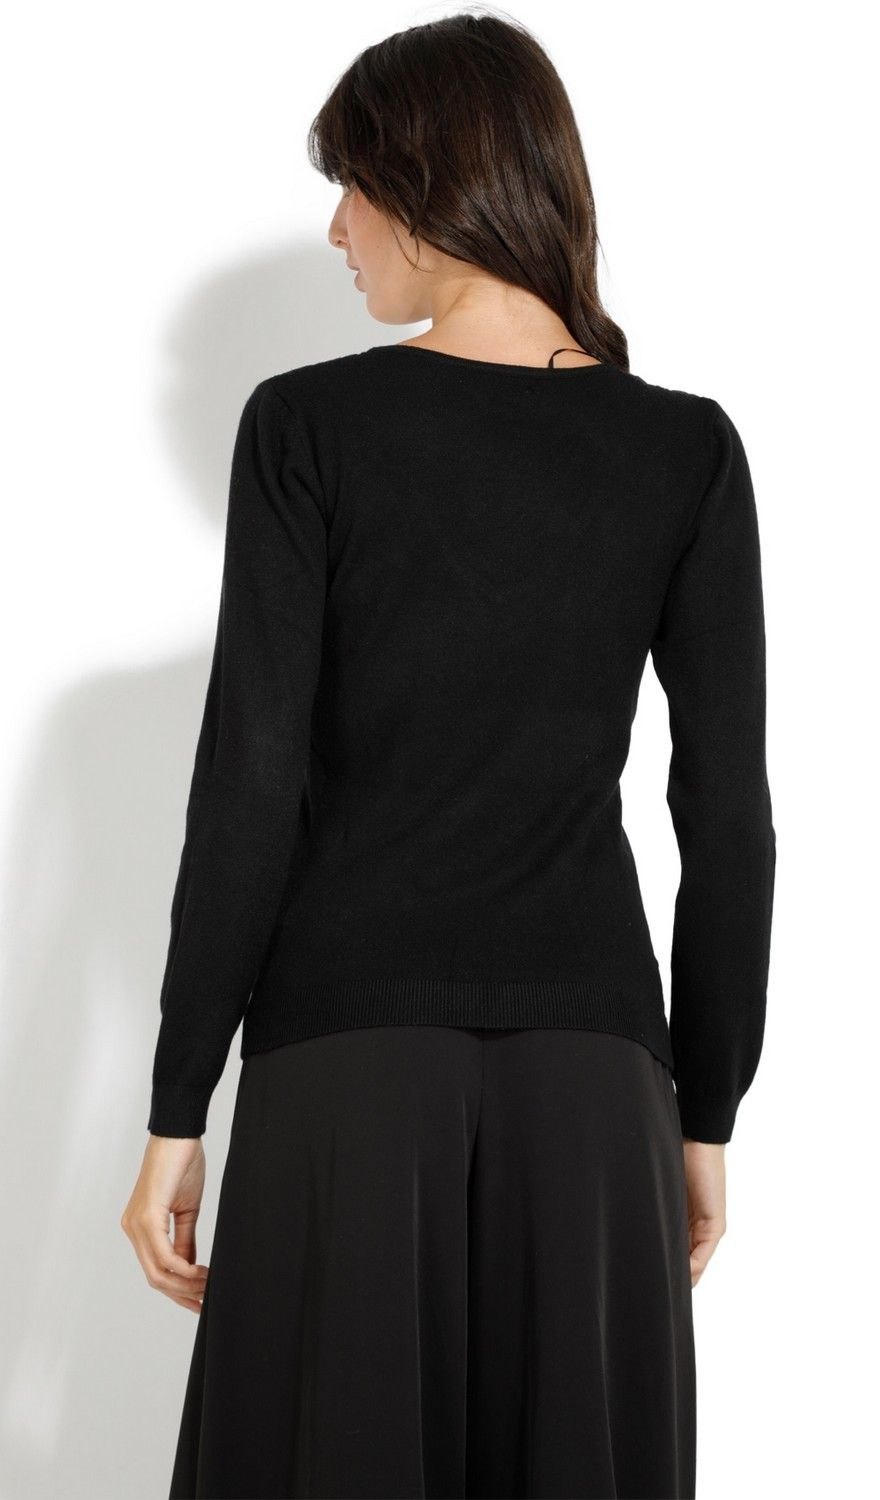 Assuili V-neck Long Sleeve Sweater with Lace in Black